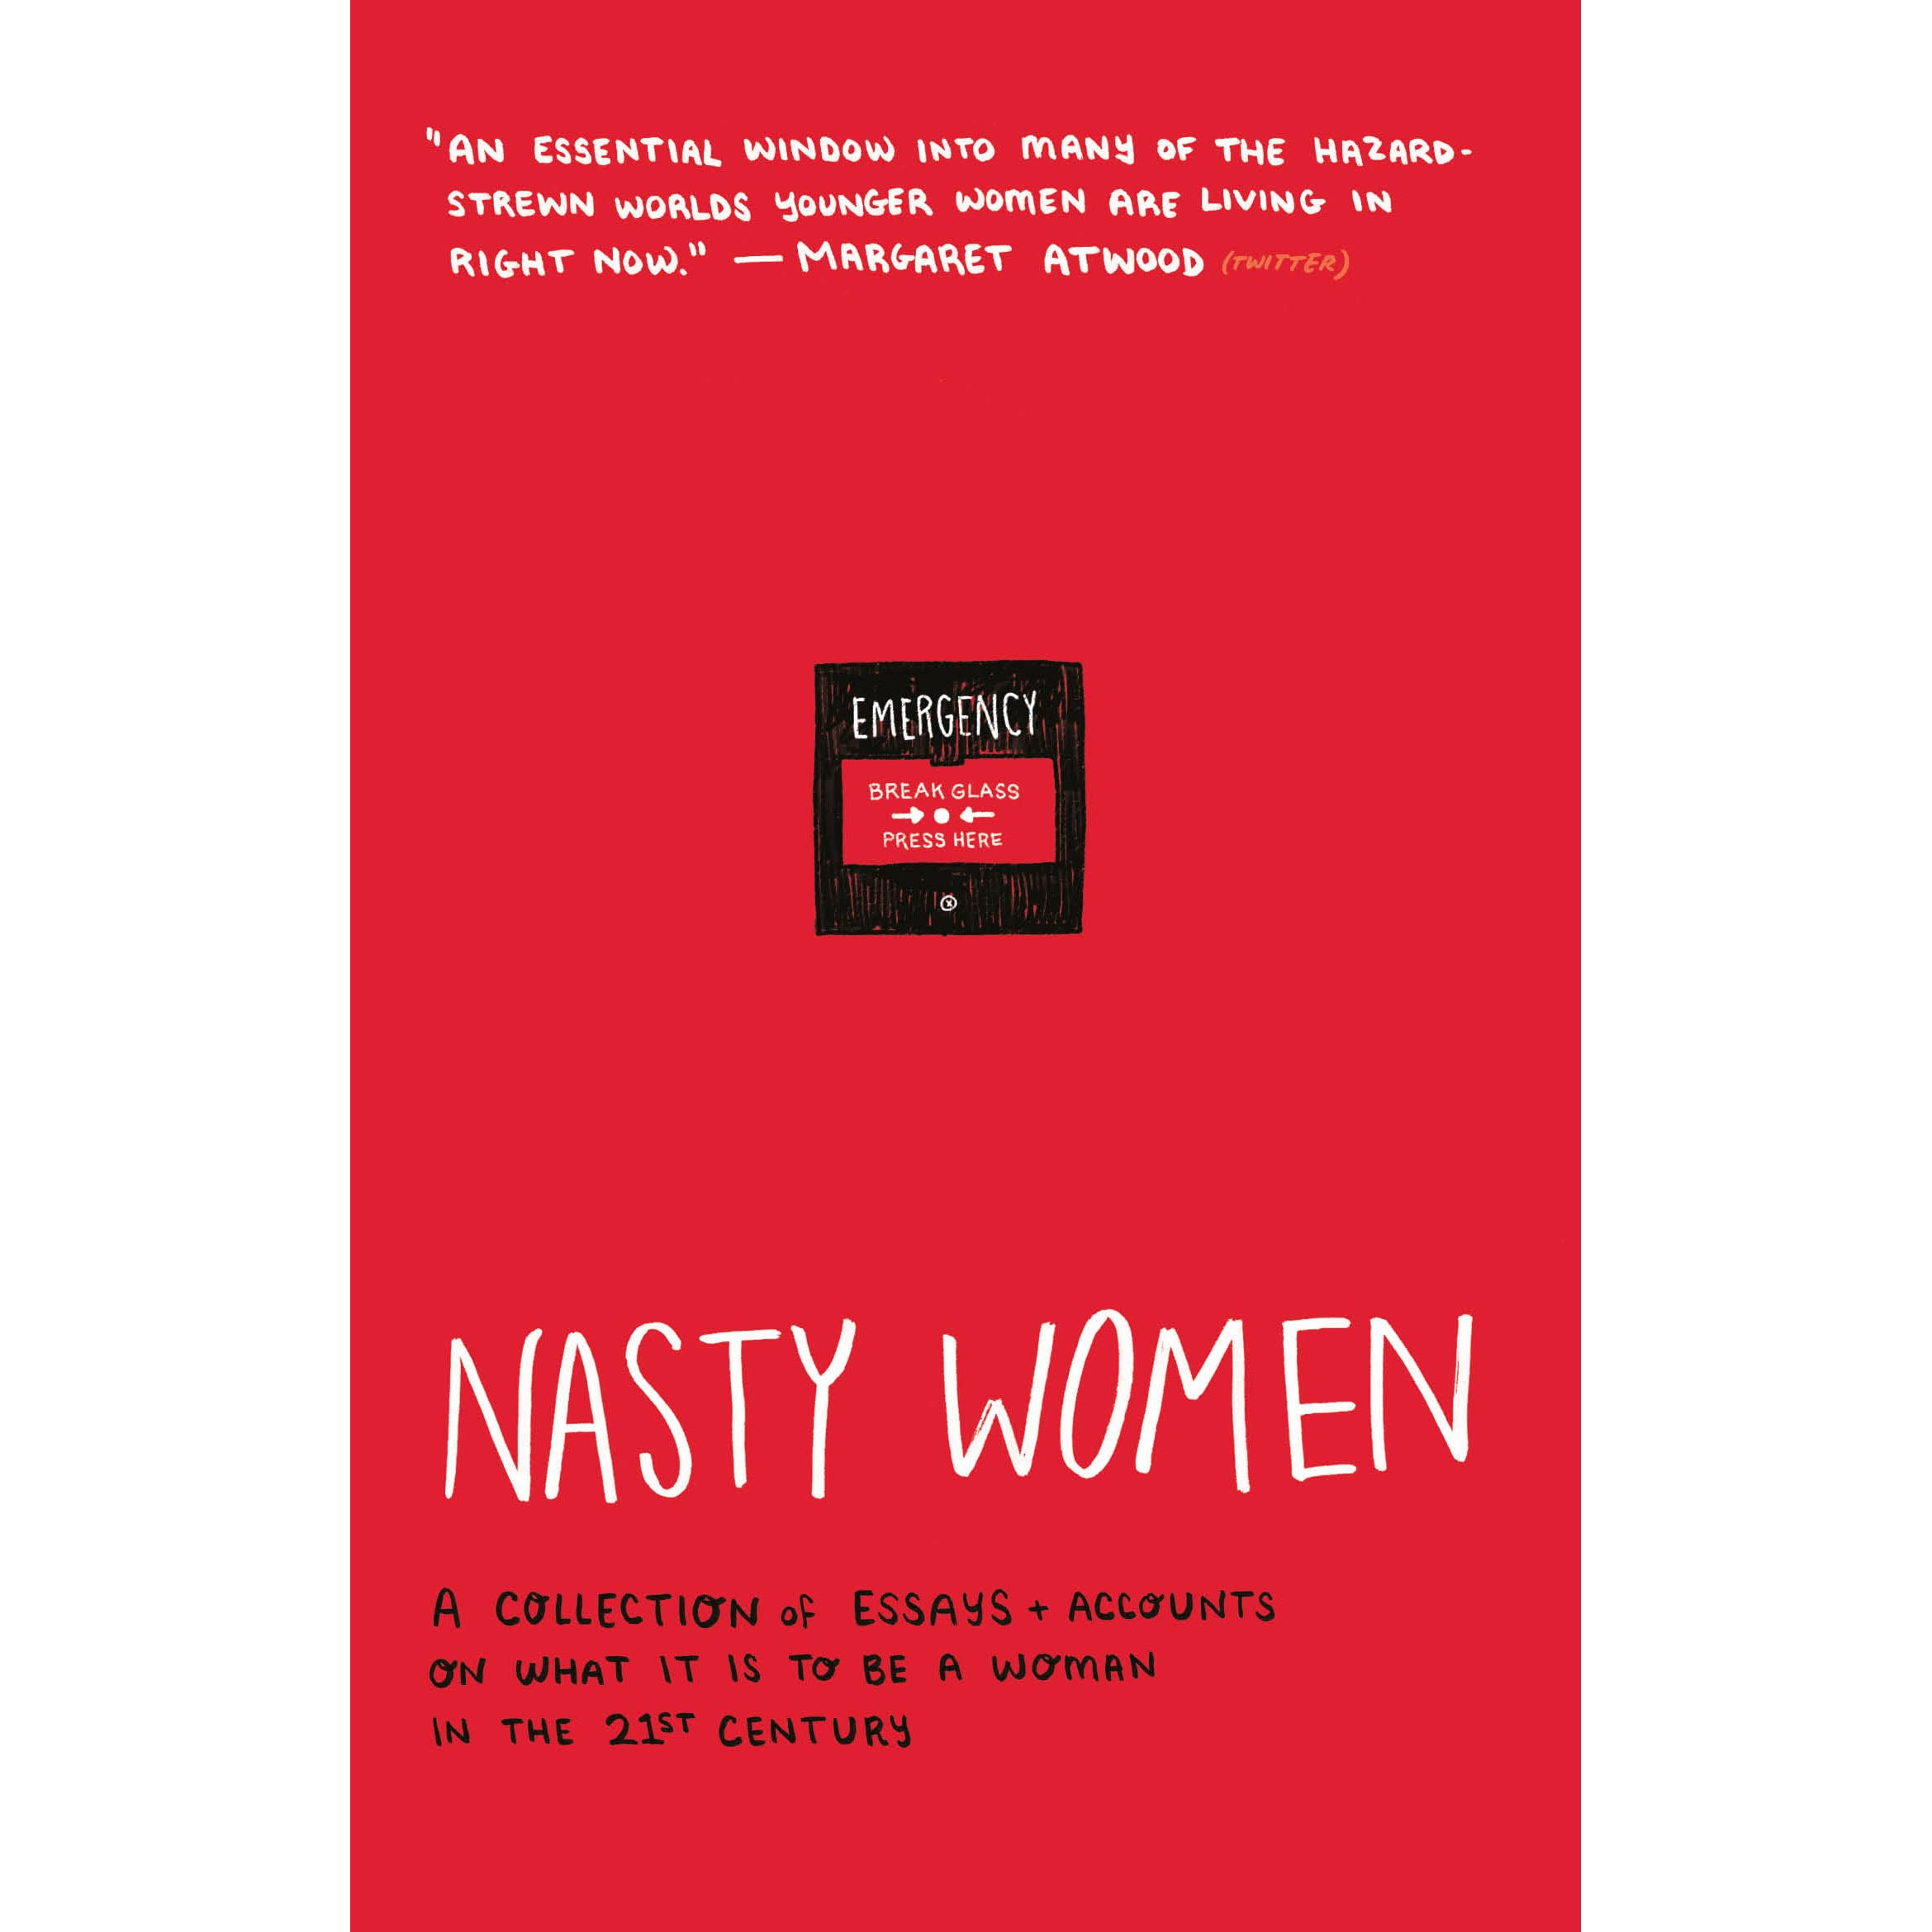 nasty women by ink